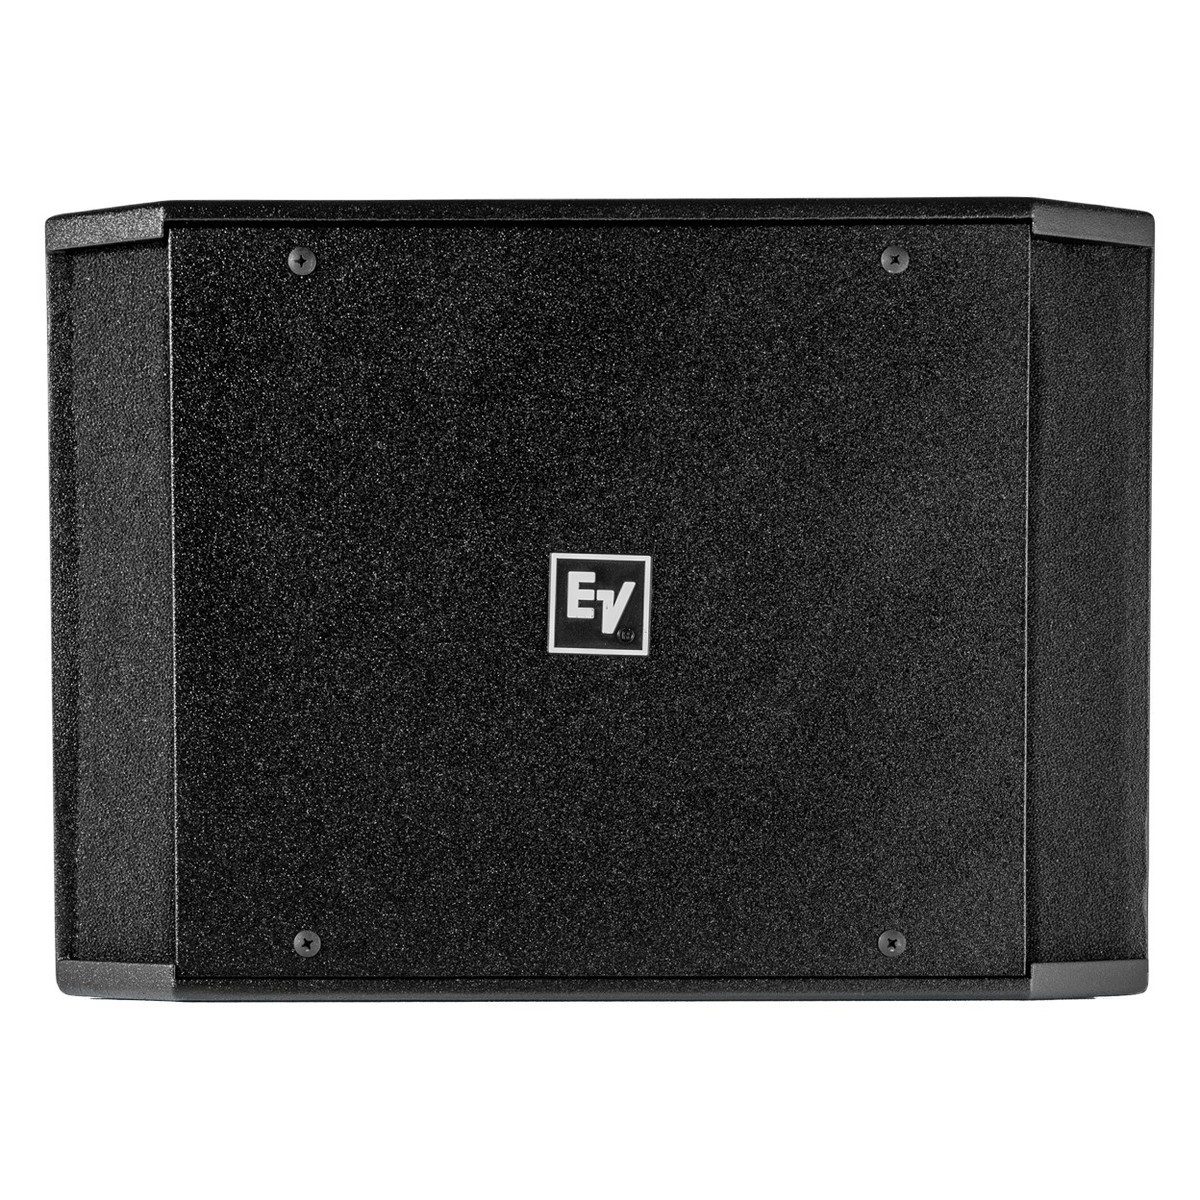 Electro Voice Evid S121 Installation Subwoofer